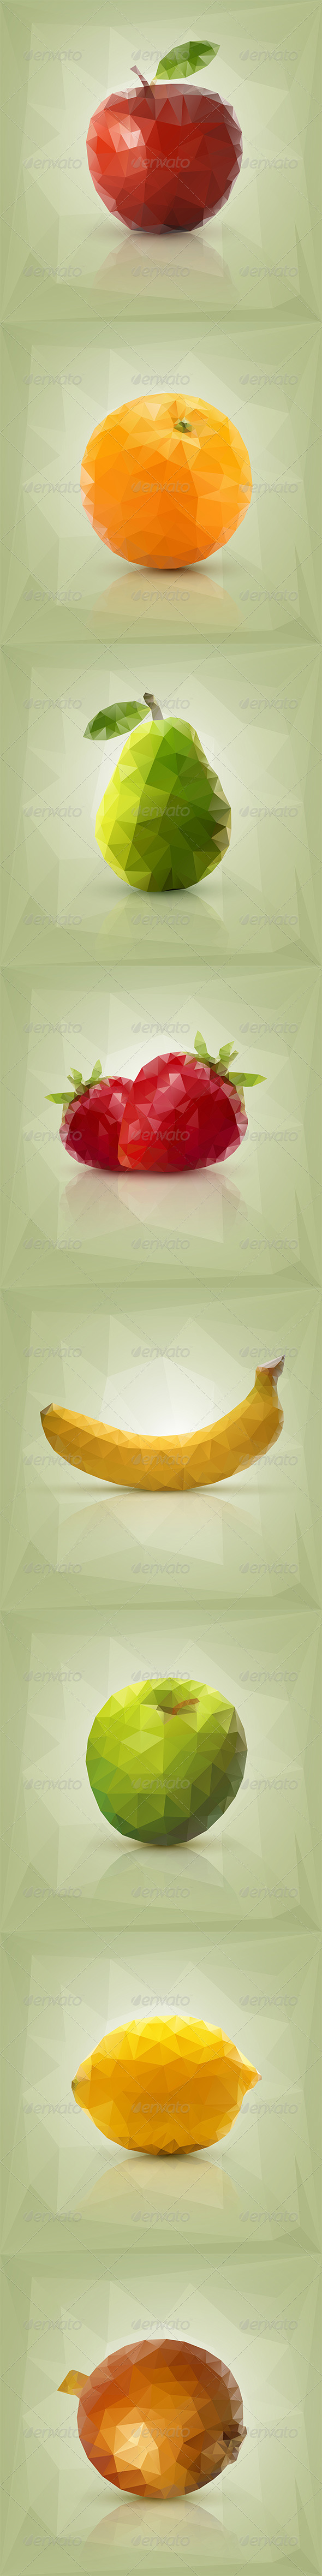 Triangle Polygon Fruit Illustrations - Food Objects